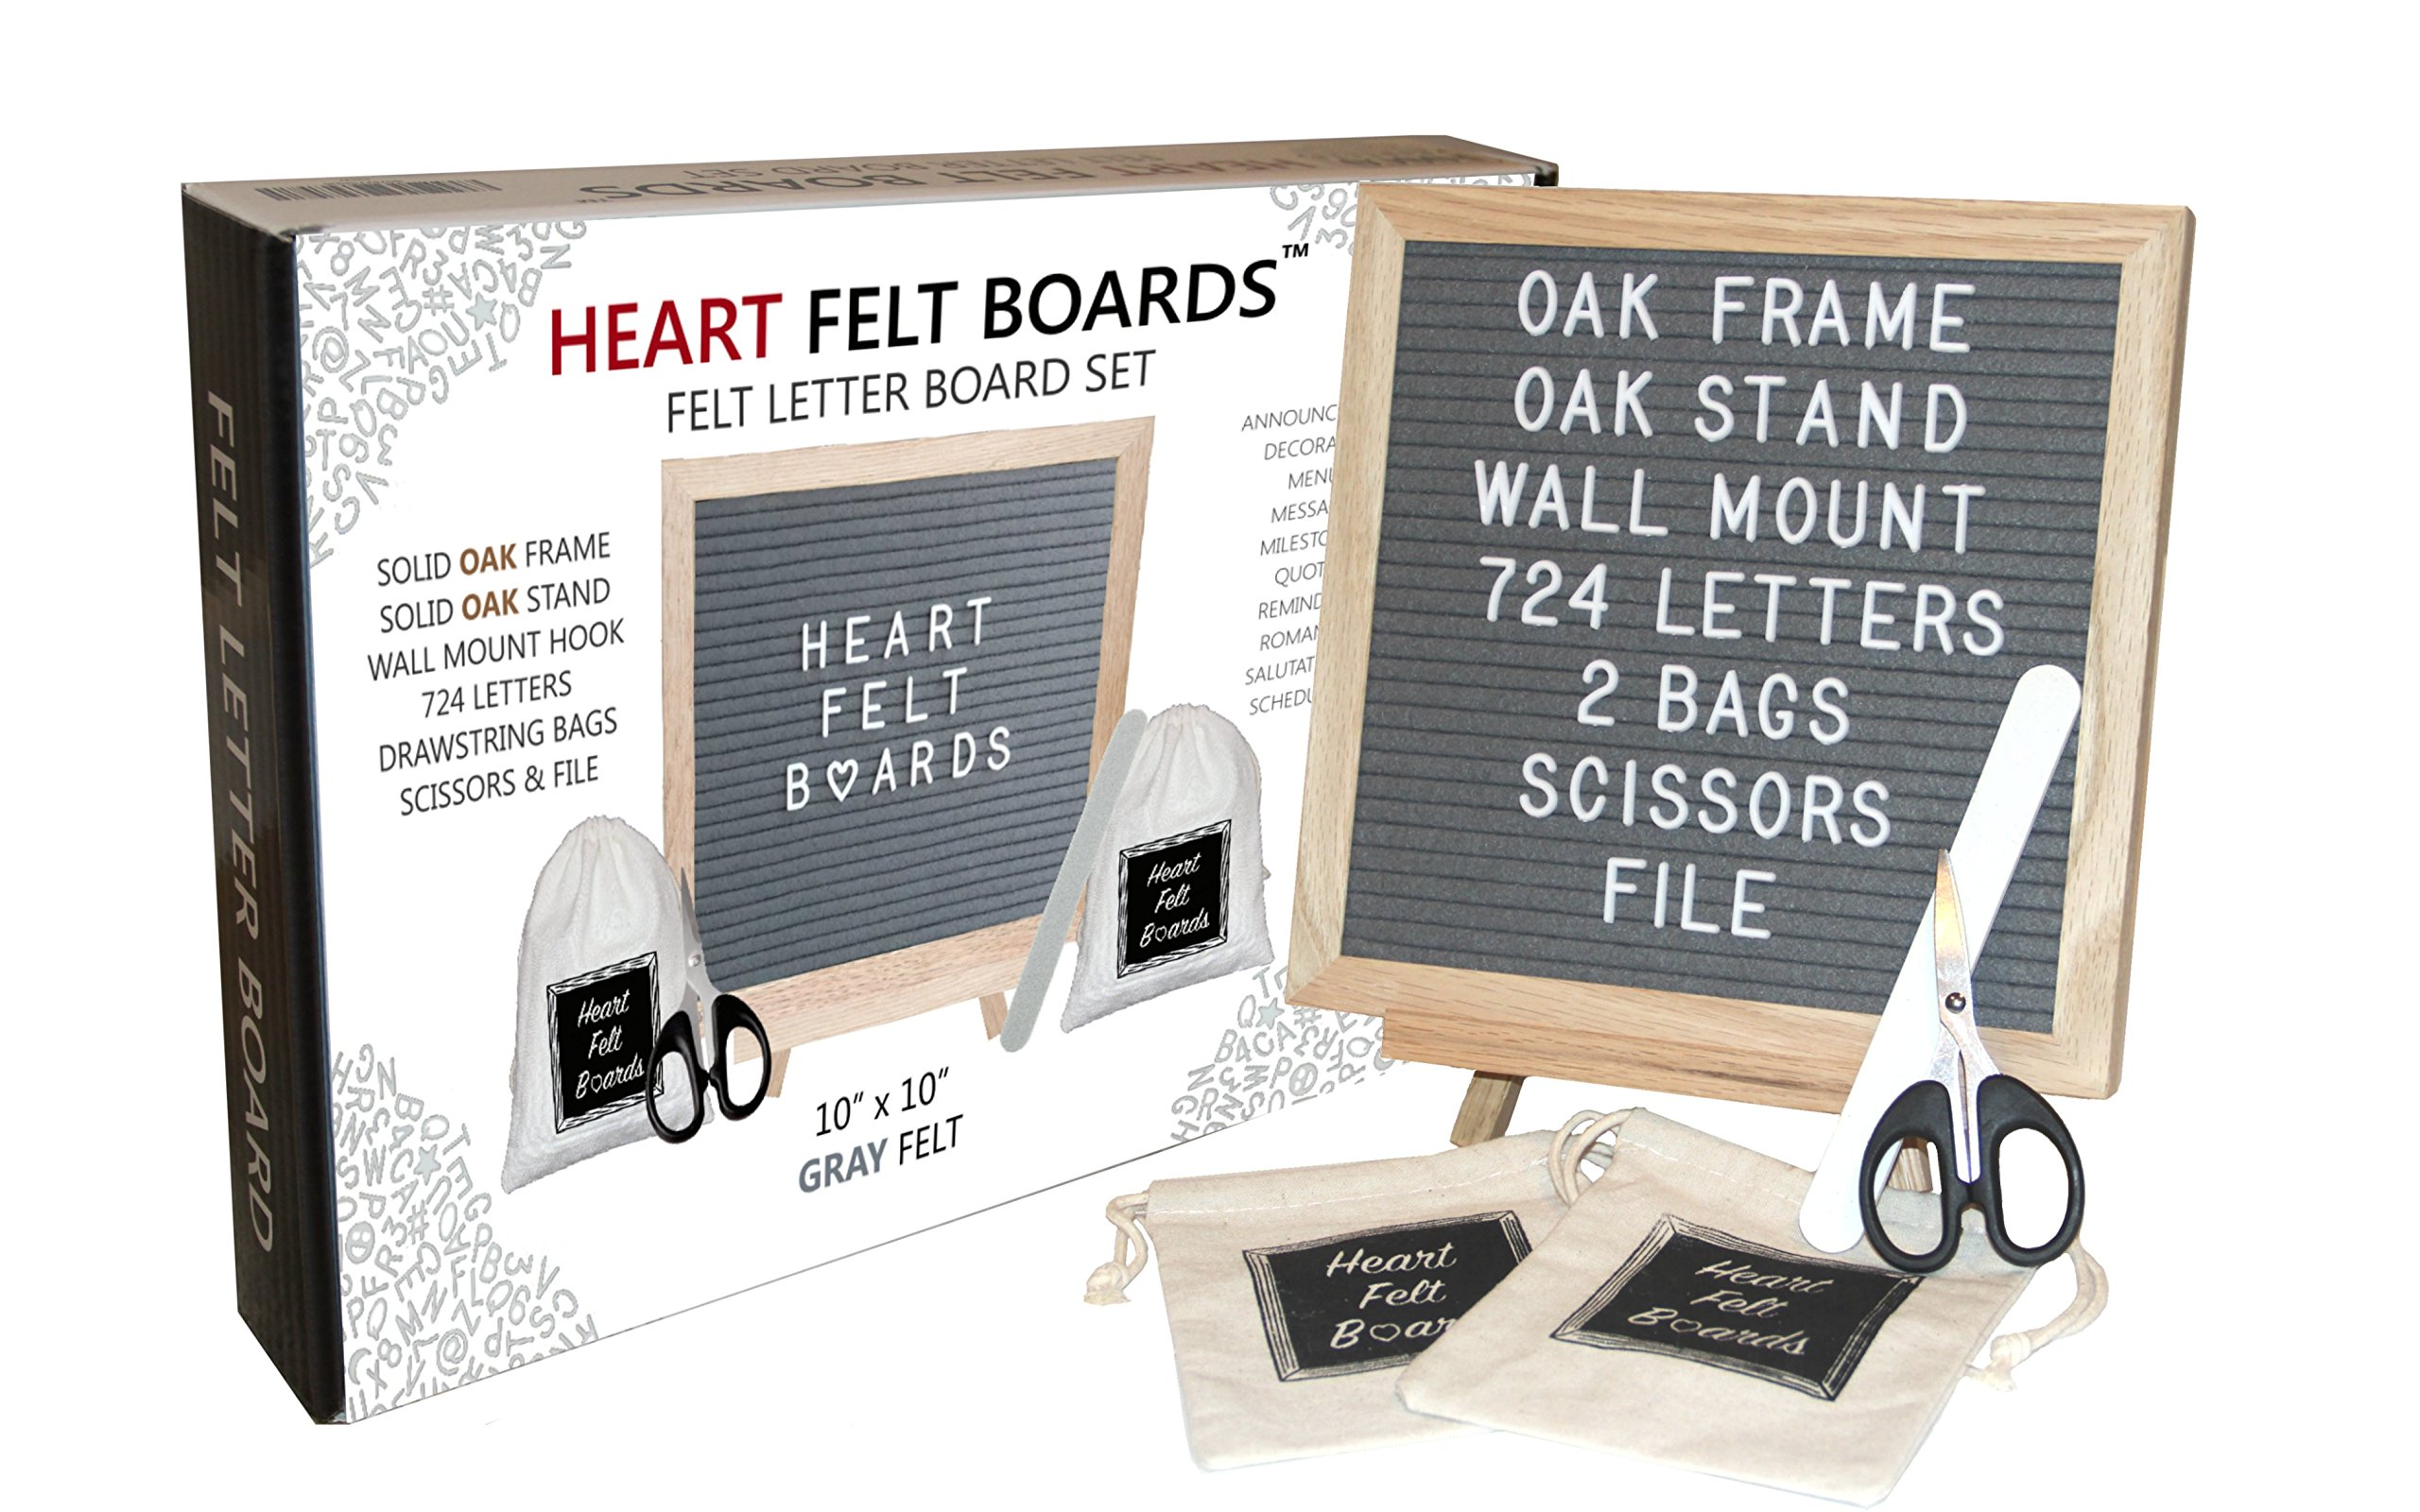 Felt Letter Board 10x10 - Oak Wood Frame Oak Tripod Stand - 724 White Letters - 2 Storage Bags Scissors File - Wall Mount Hanger - Emojis Symbols Numbers - Wood Changeable Message Display Sign (Gray)